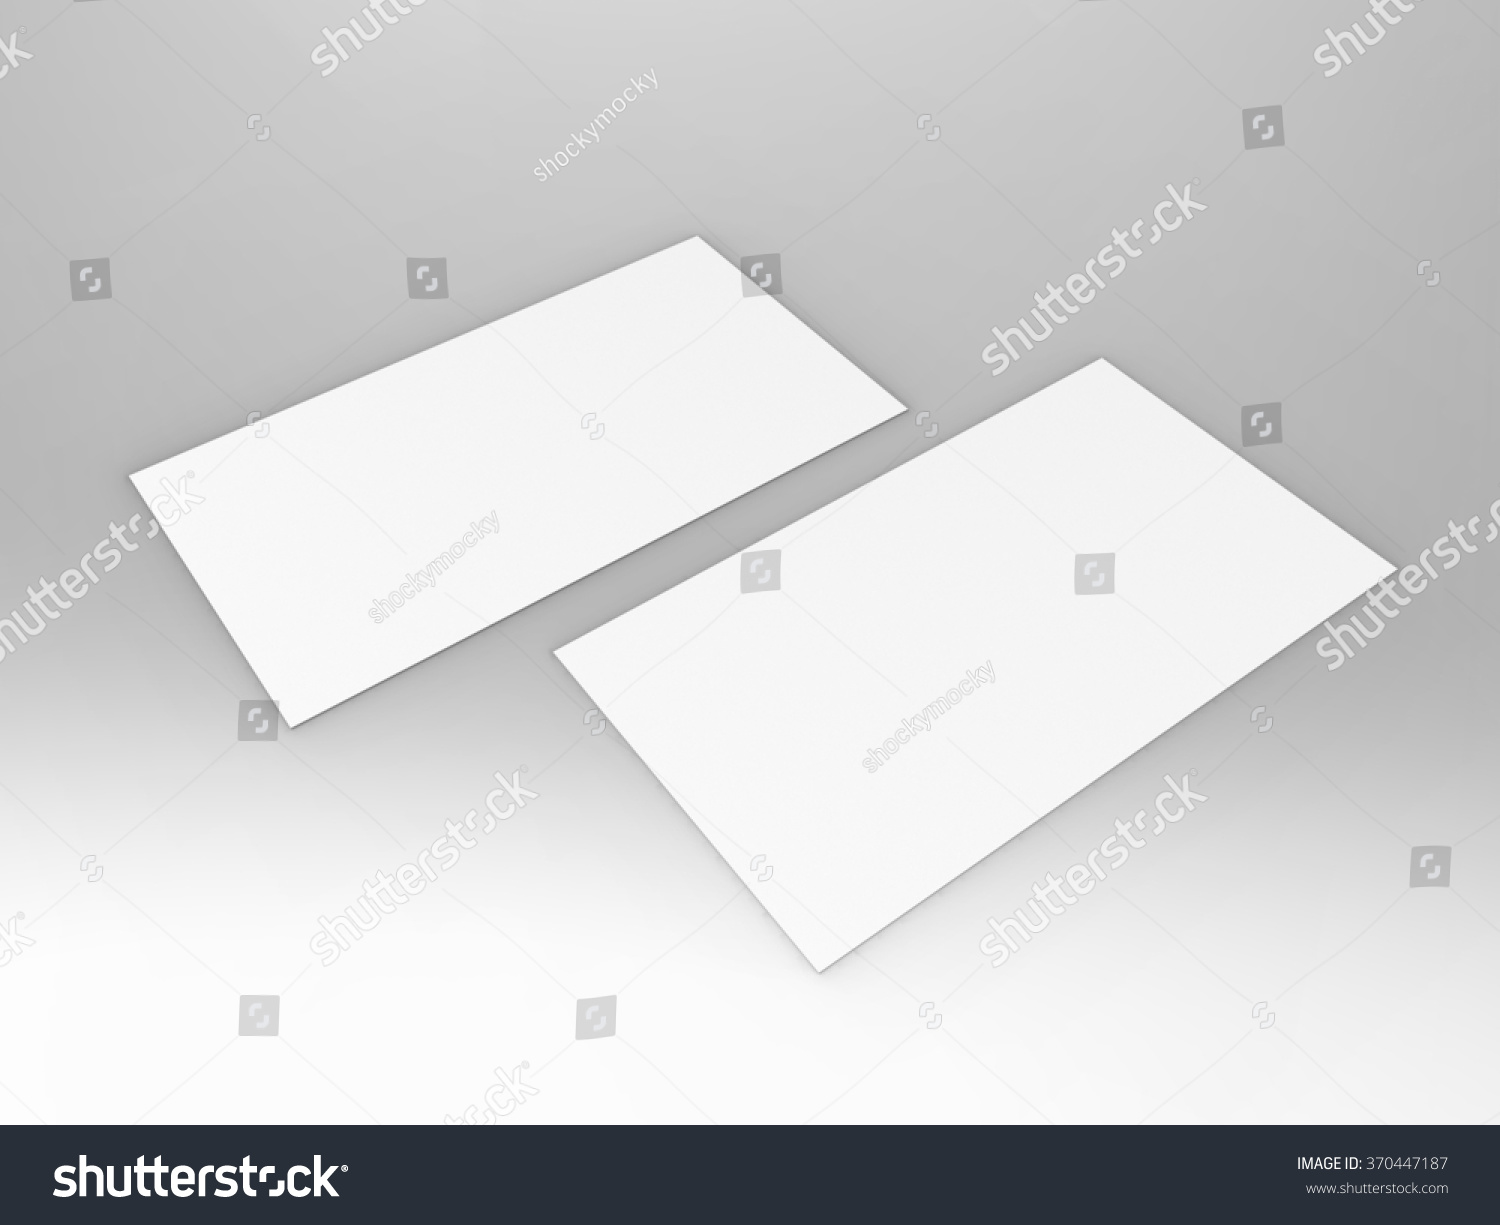 Business card 3 d render professional 3 d stock illustration business card 3d render is professional 3d render that can be used for various marketing campaigns colourmoves